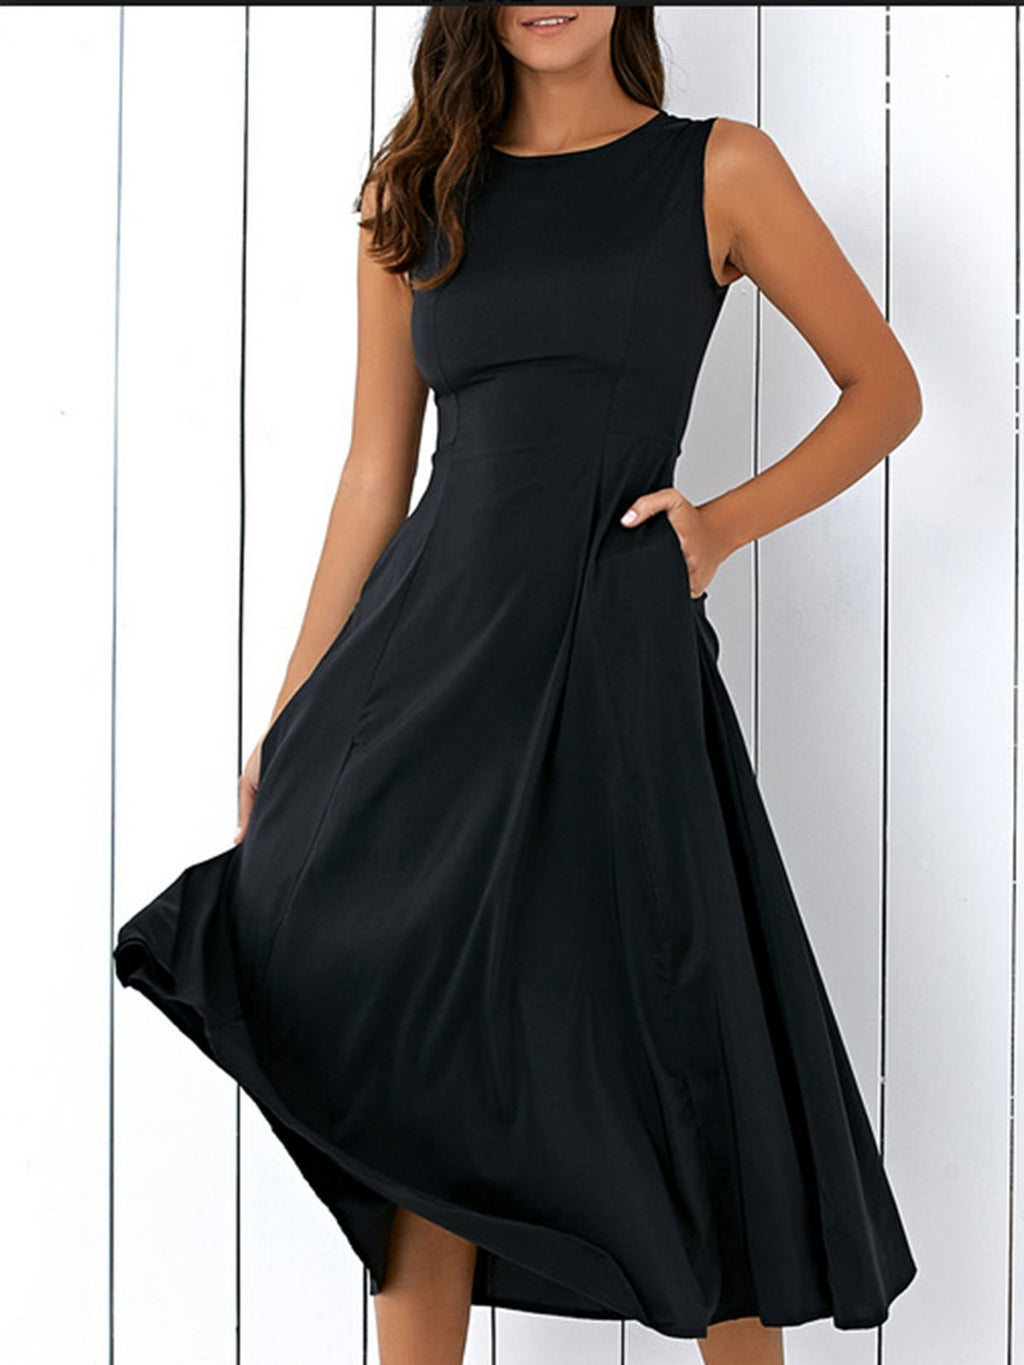 Plus Size Black Pockets Elegant Crew Neck Sleeveless Solid Dress